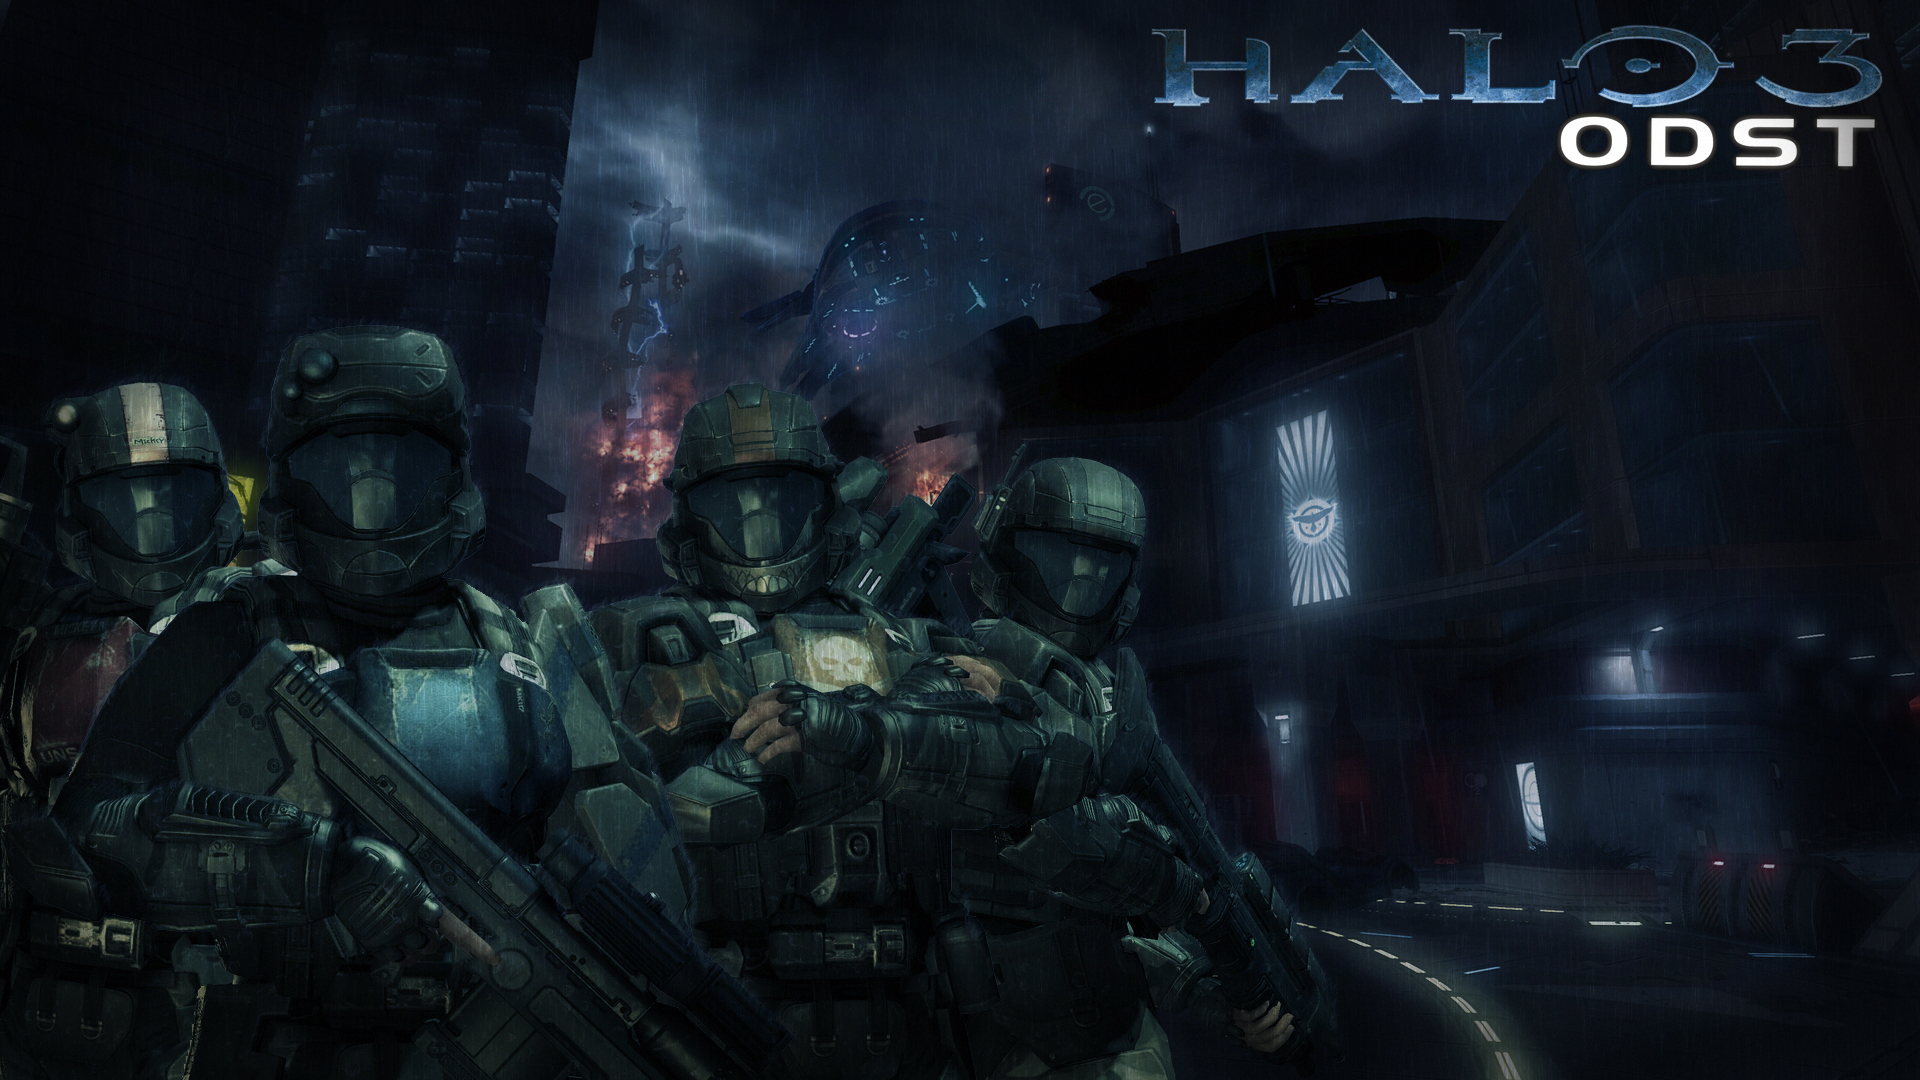 Free Download Wallpaper Halo 3 Odst By Mackaged 1920x1080 For